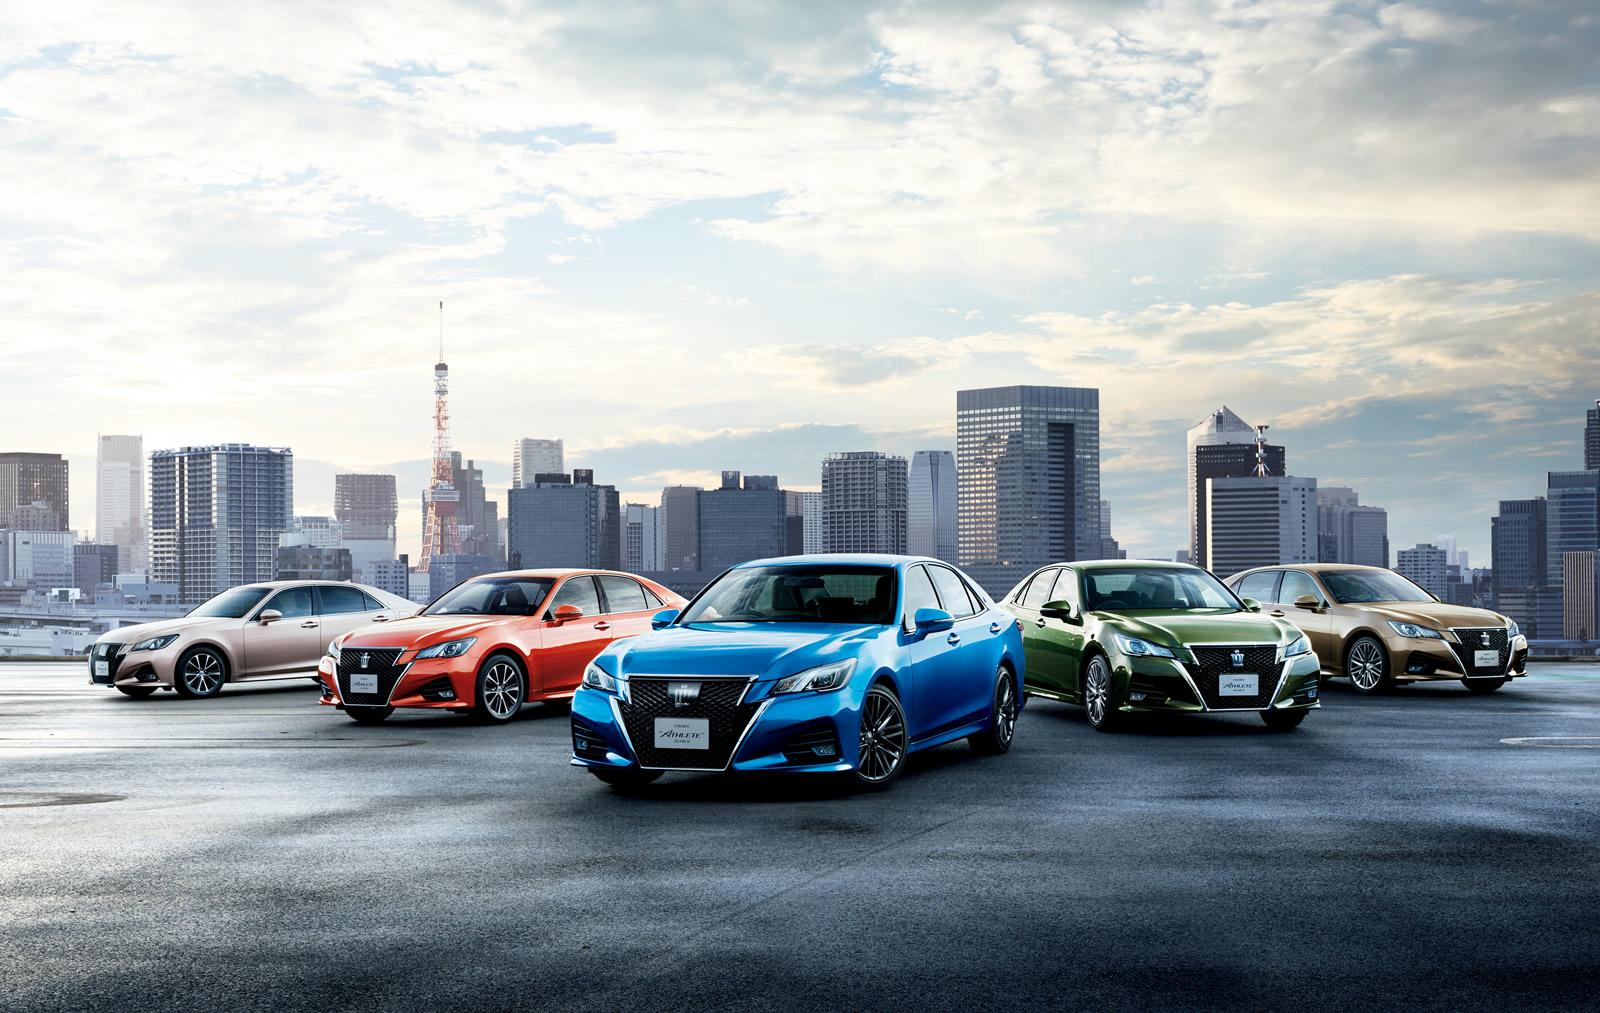 2014 Toyota Corolla For Sale >> 2014 Toyota Crown Athlete Is a Cool Sedan You Can't Have - autoevolution